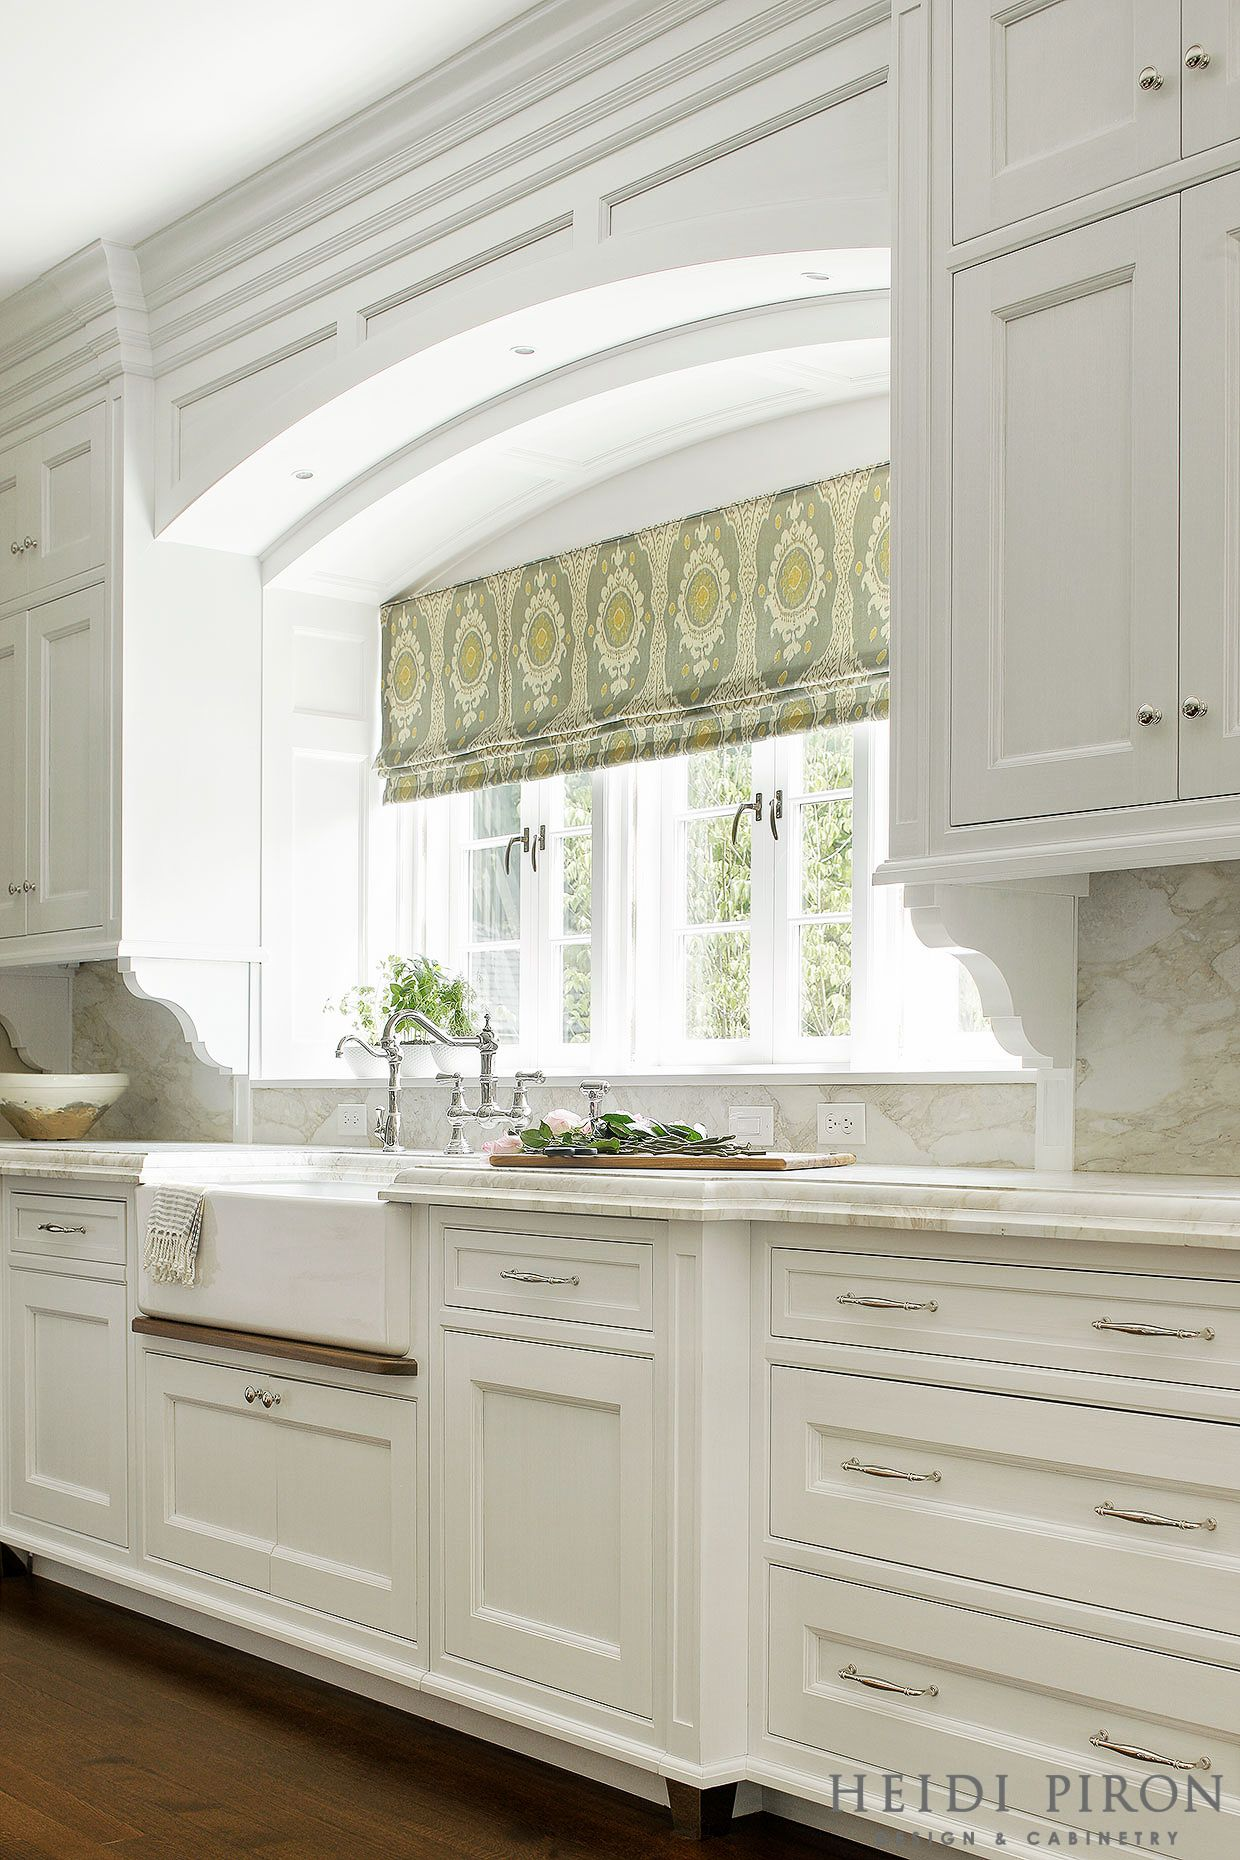 Heidi Piron Design And Cabinetry Traditional 25 Beautiful Home